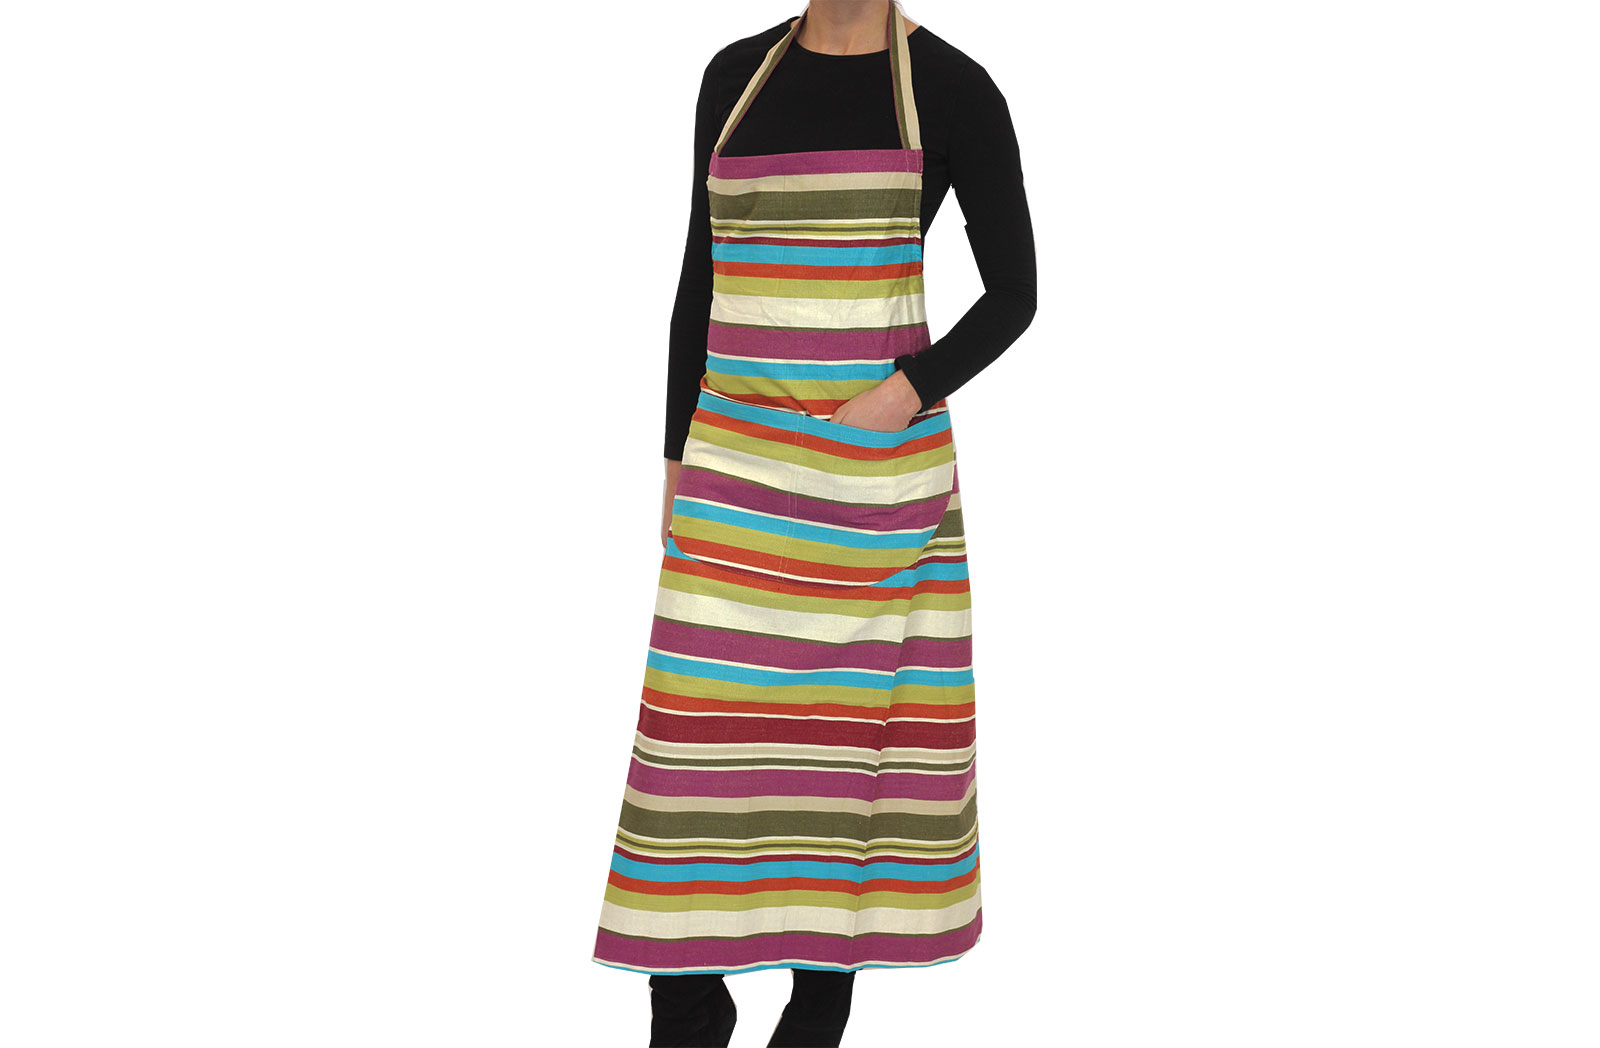 Cream Striped Aprons - Dressage